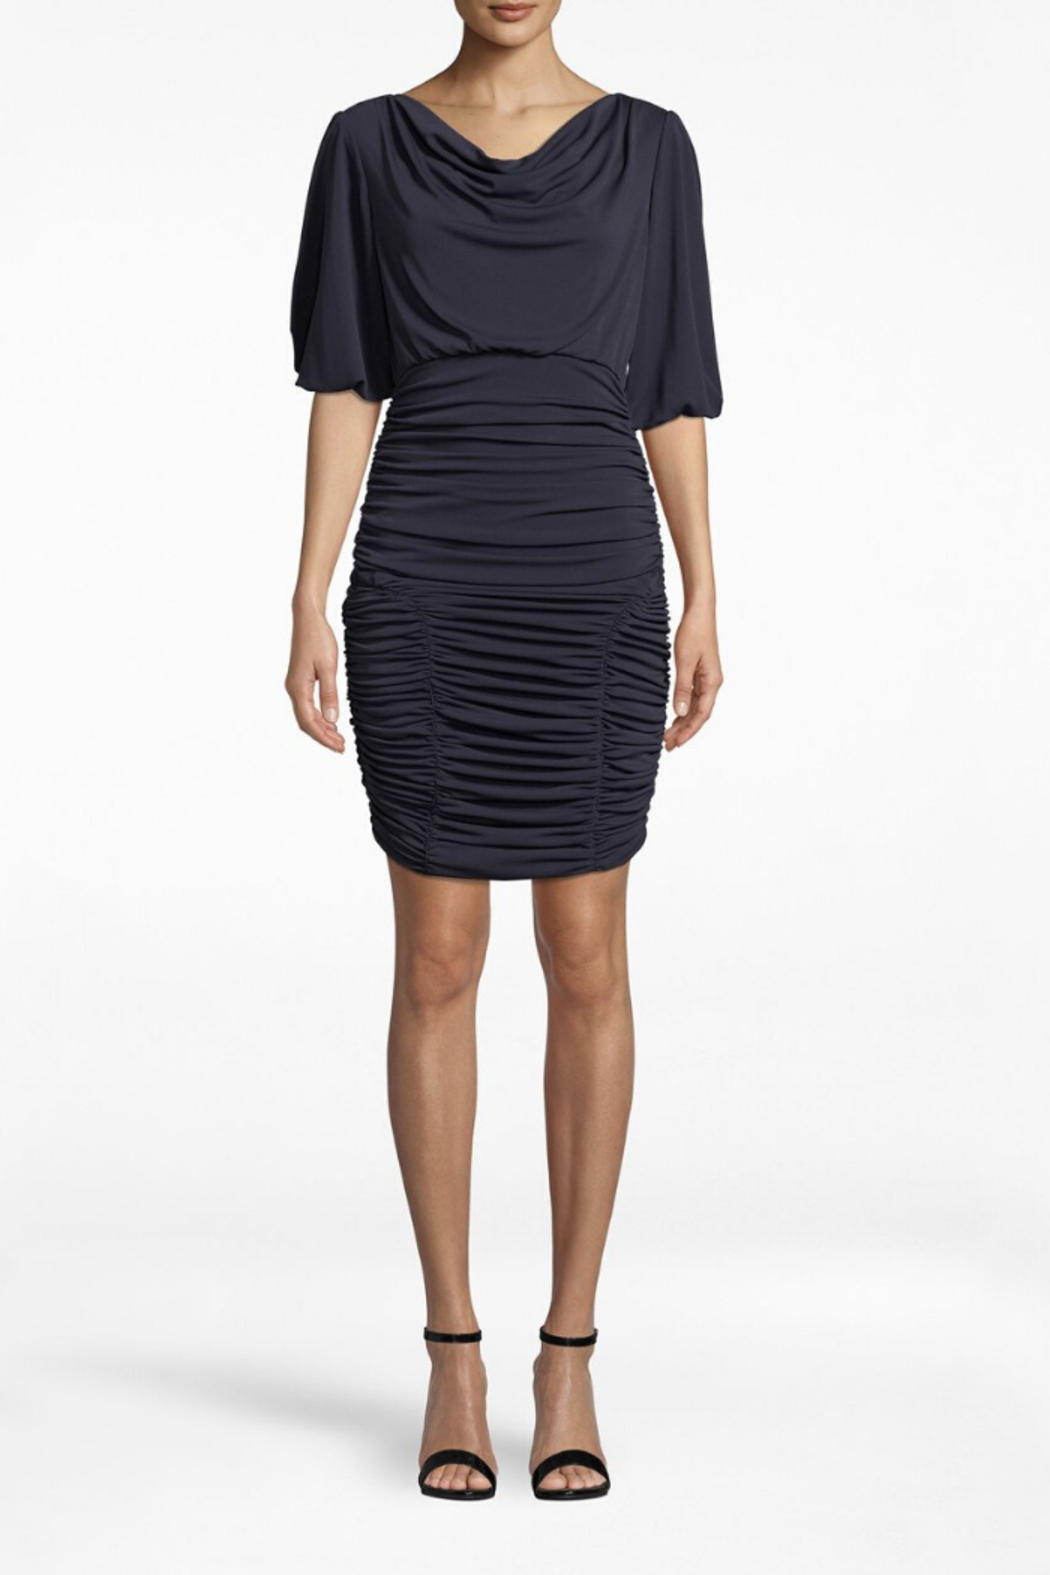 Nicole Miller Ruched Dress - Front Cropped Image